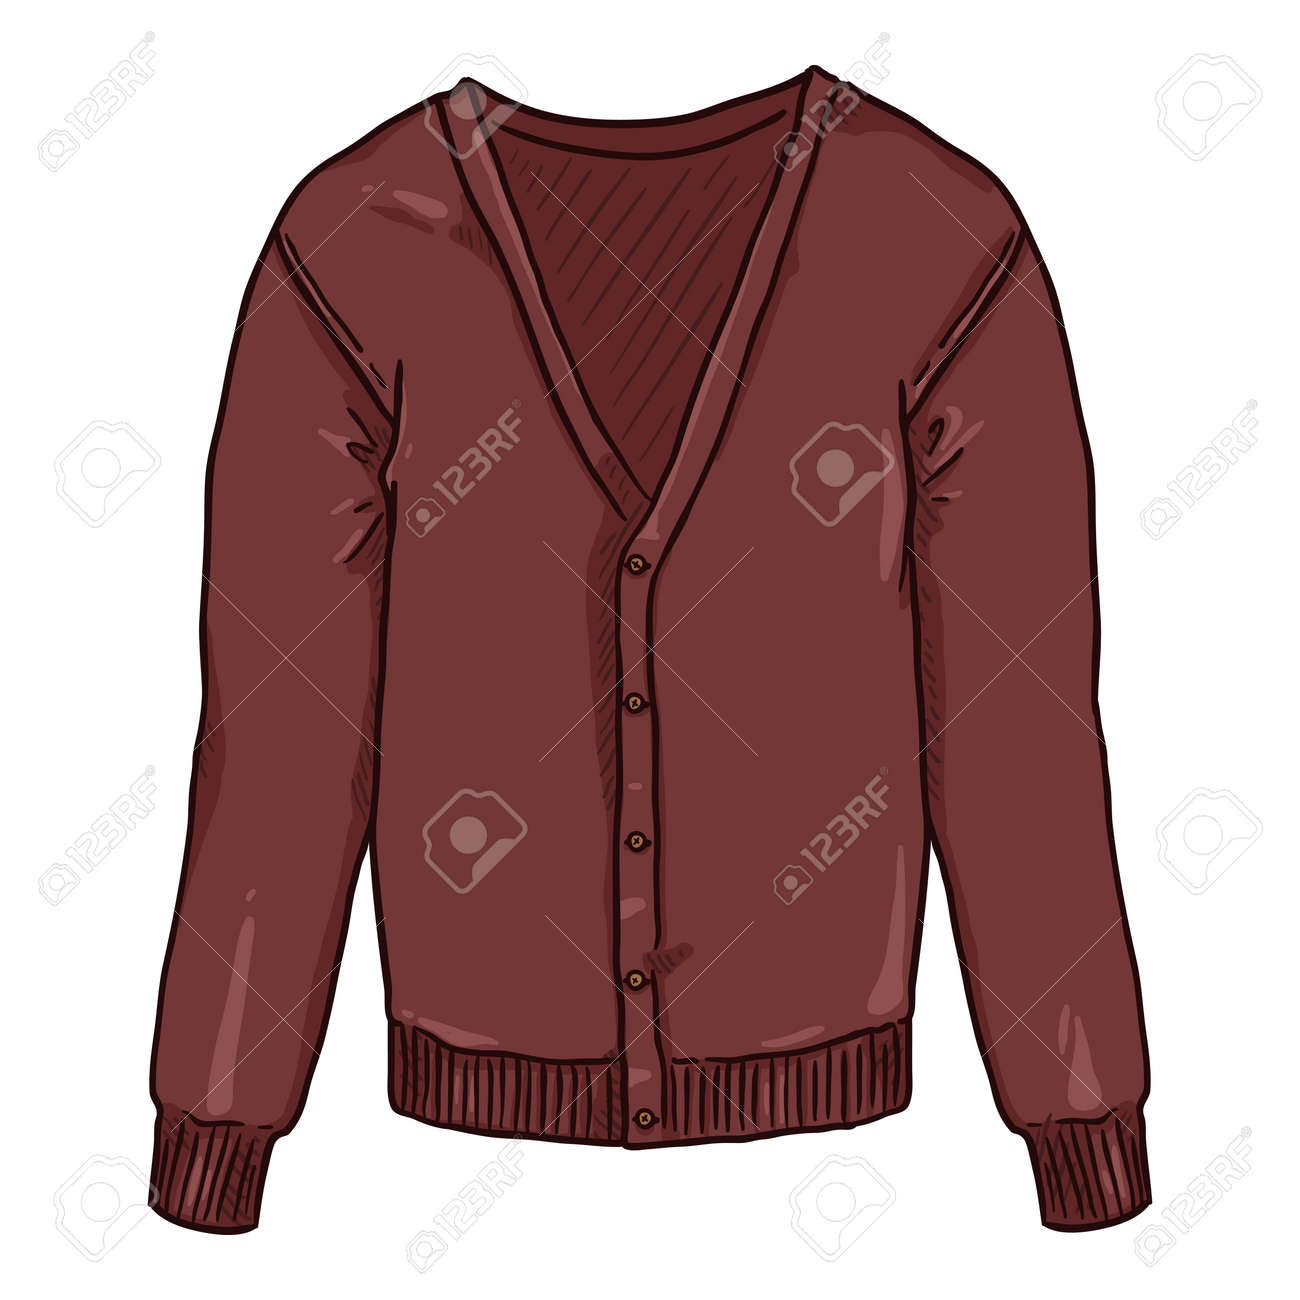 Red Cardigan on White Background. Vector Cartoon Illustration - 169663666